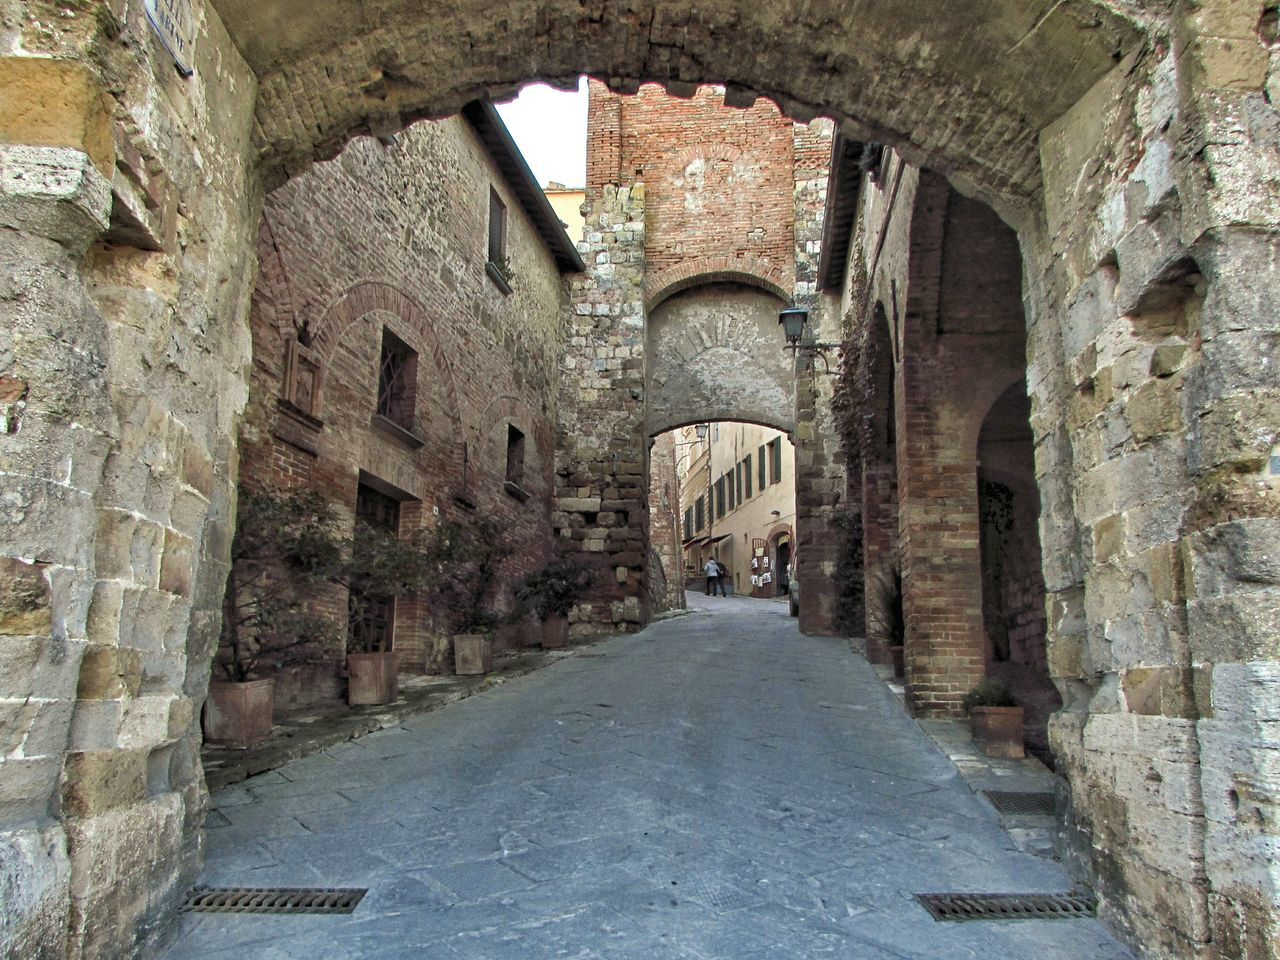 Prospectives Built Structure Italy Photos Photography Tranquility People And Places Tuscany Architecture_collection EyeEmBestPics Photooftheday EyeEm Gallery EyeEm Best Shots Architecture Photography Walking Old Architecture Perspective